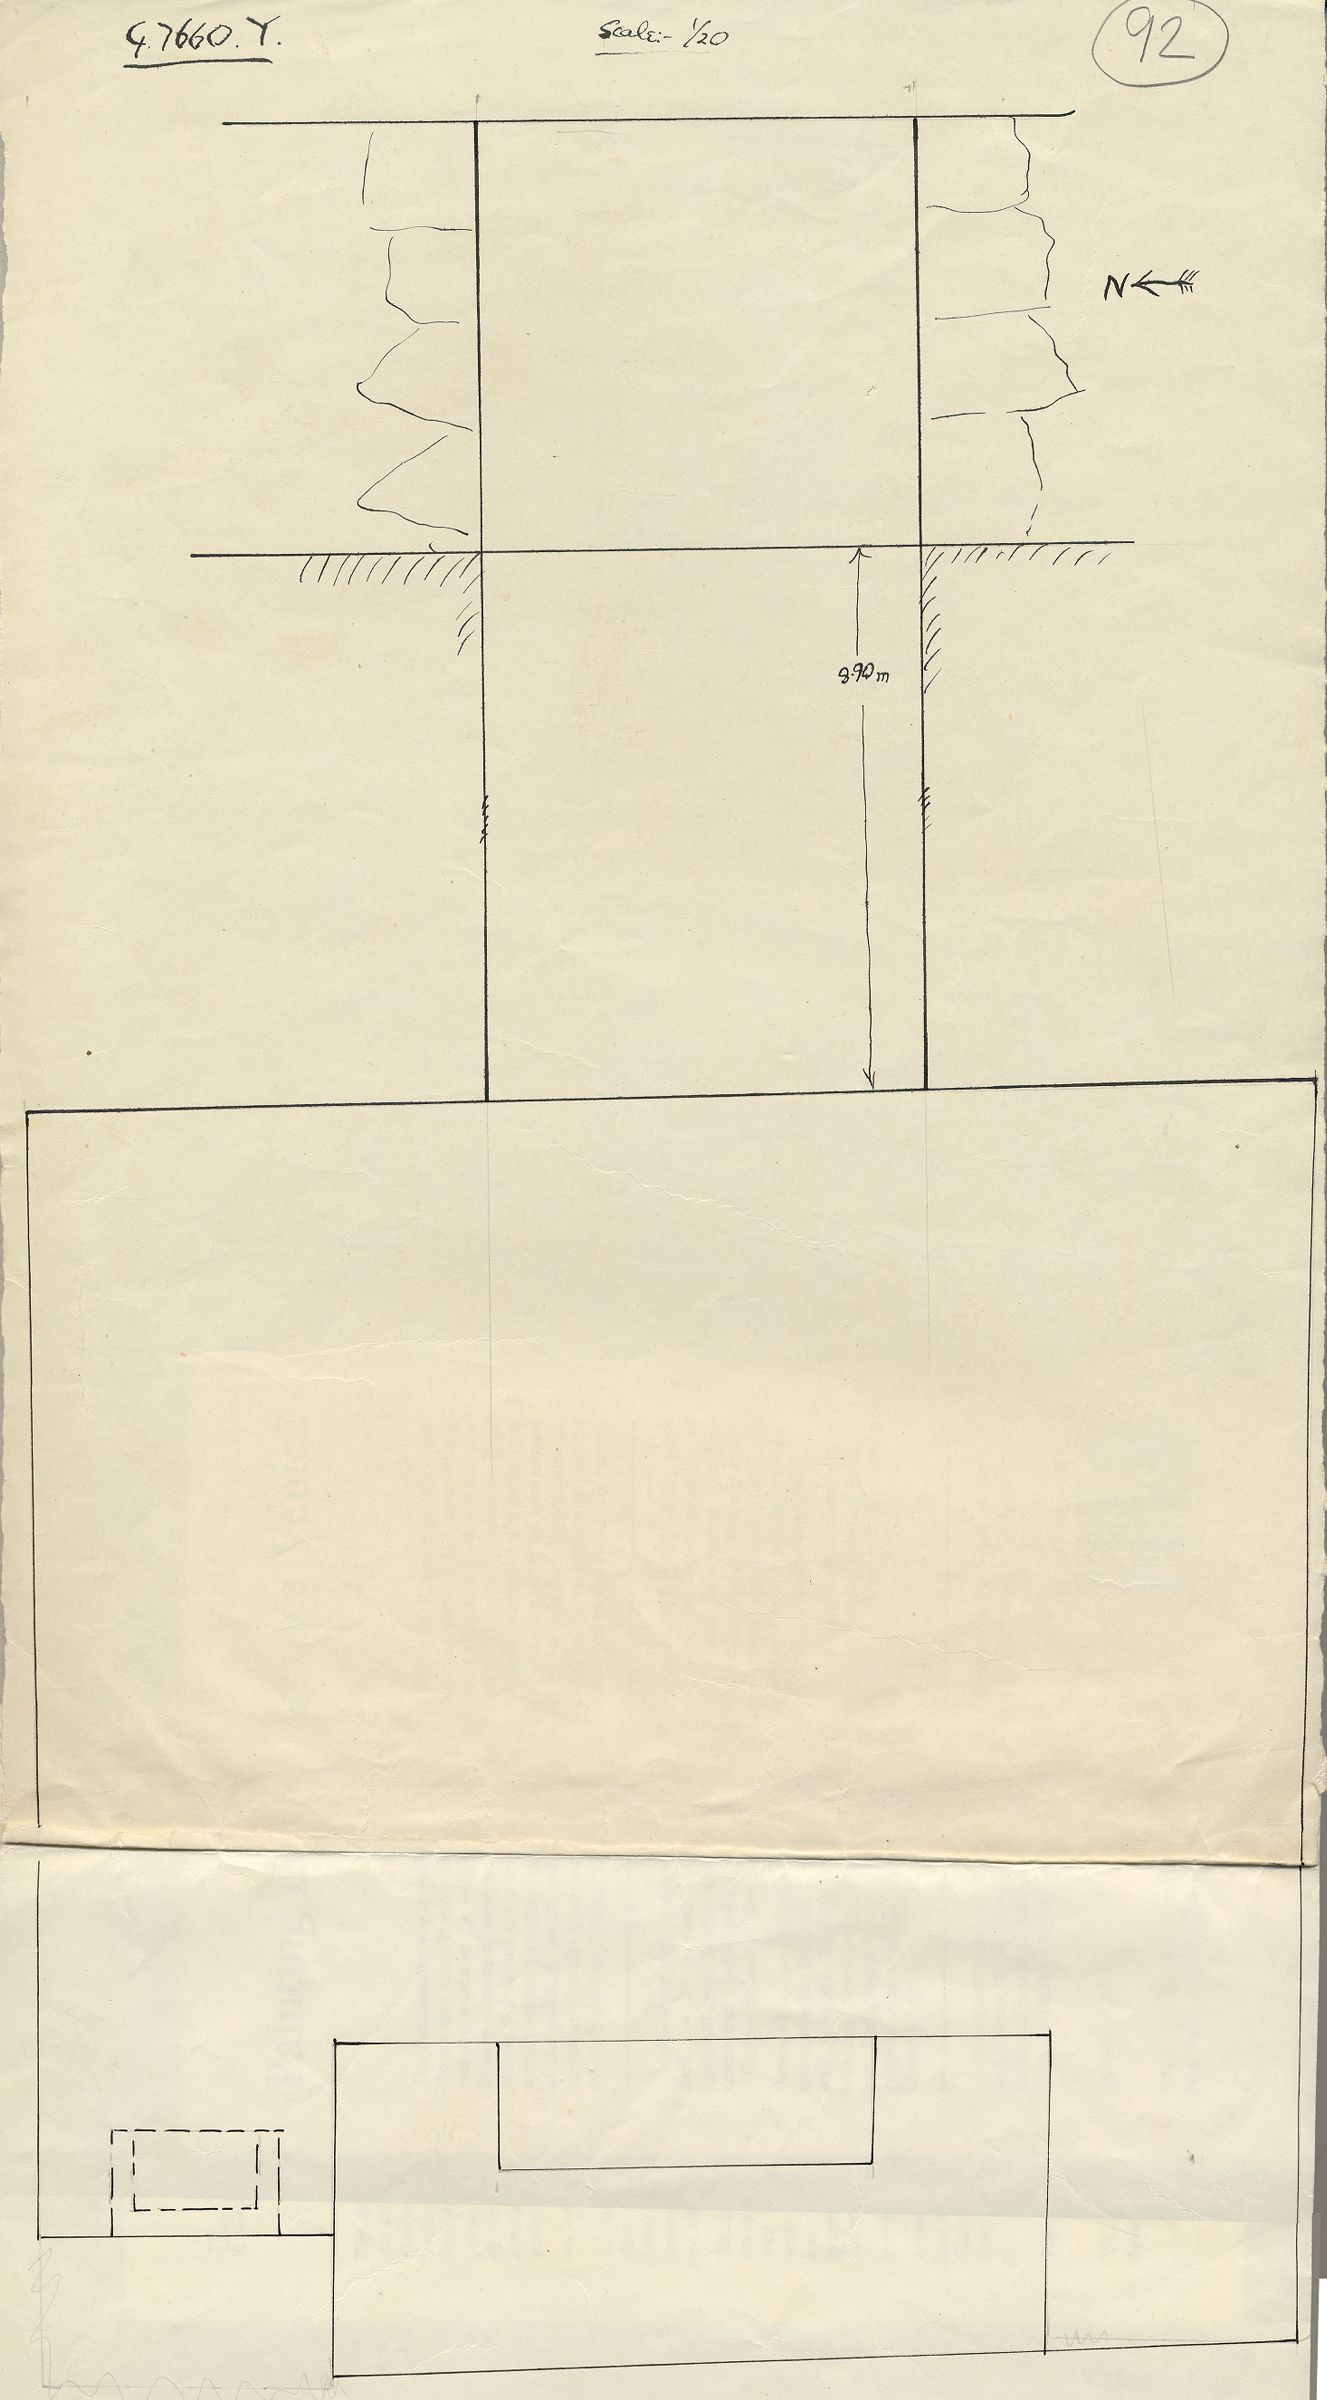 Maps and plans: G 7660, Shaft Y